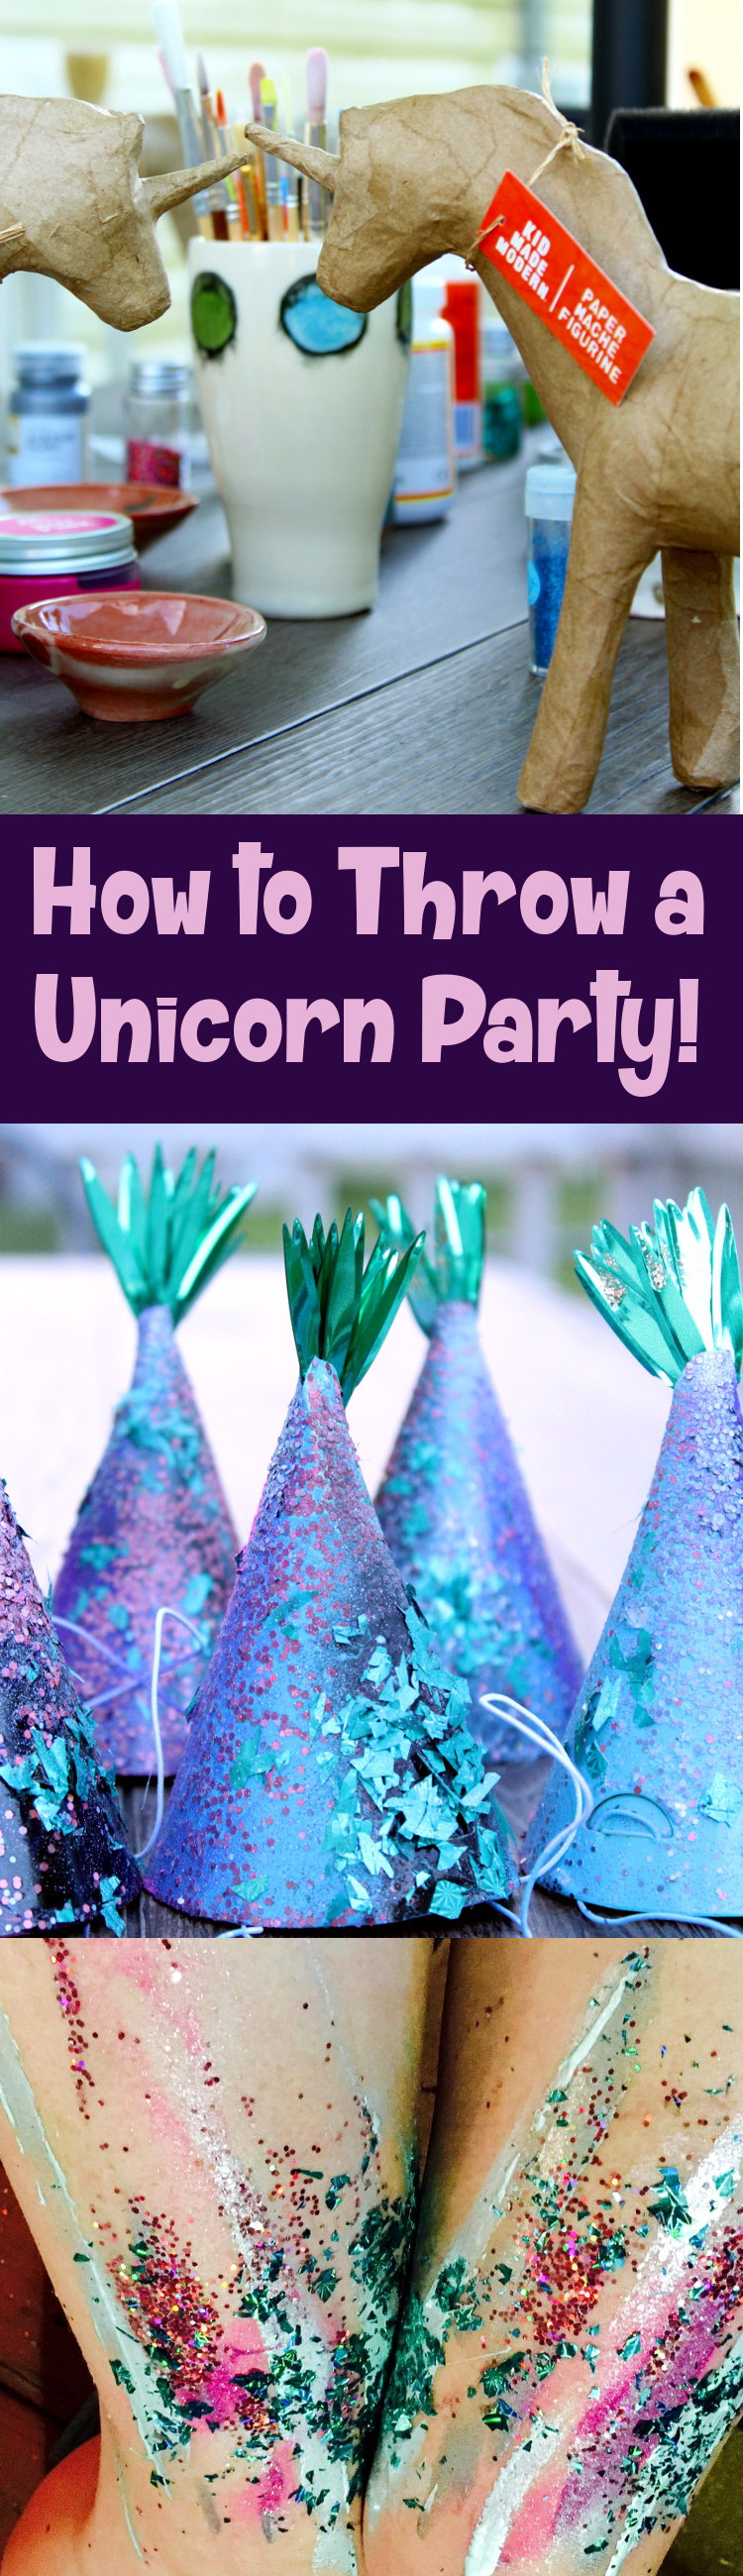 Unicorn Party Ideas! How to throw a unicorn party! Pair a paint your own unicorn paint project with fun DIY unicorn party hats and unicorn party favors for a magical event!